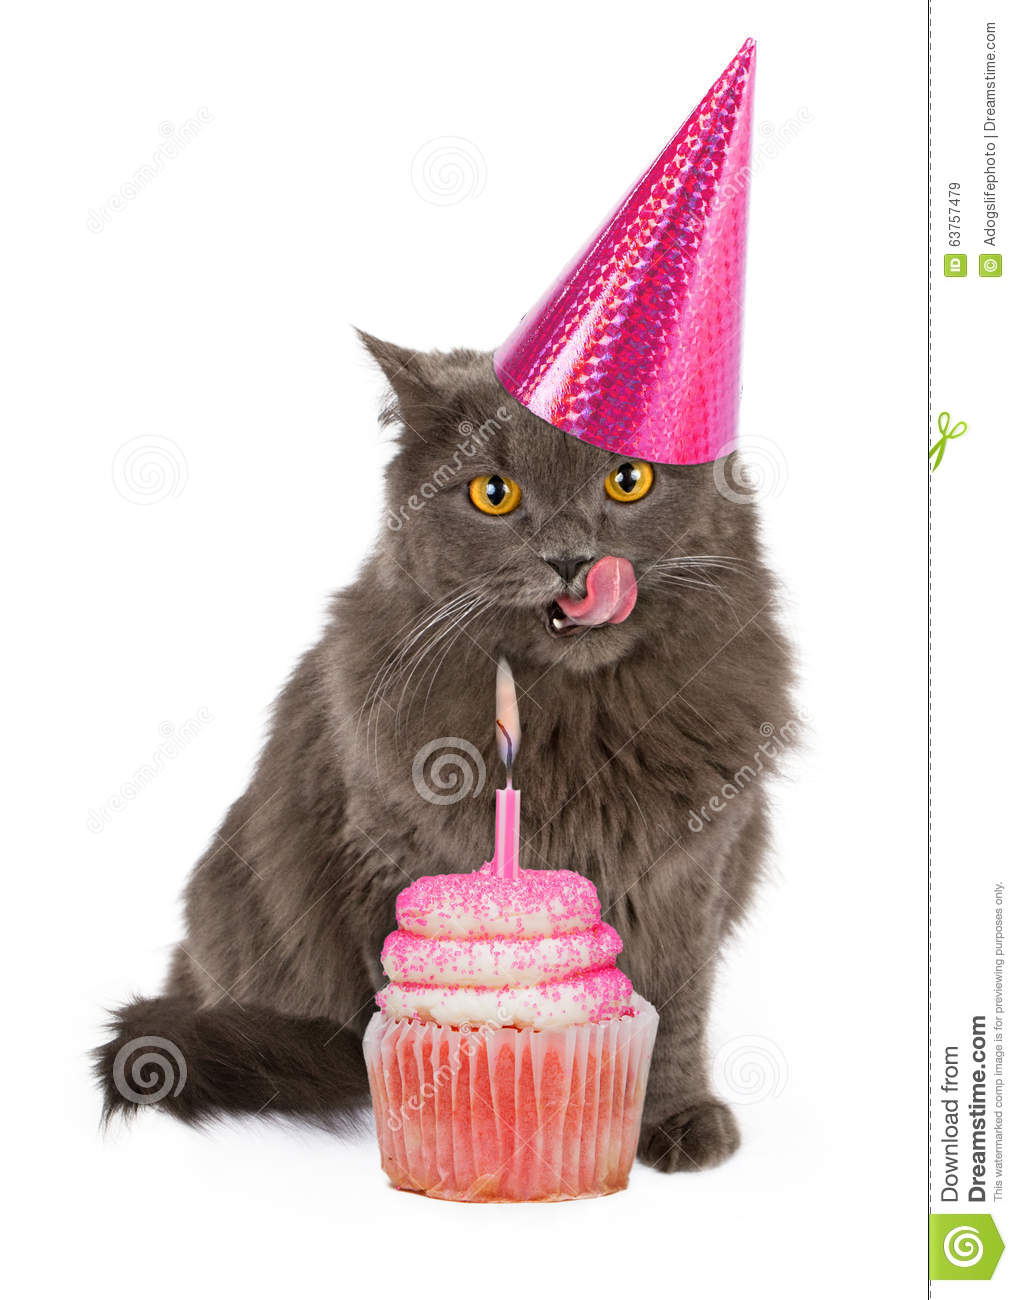 Happy Birthday Party Cat With Pink Cupcake Stock Image Image Of